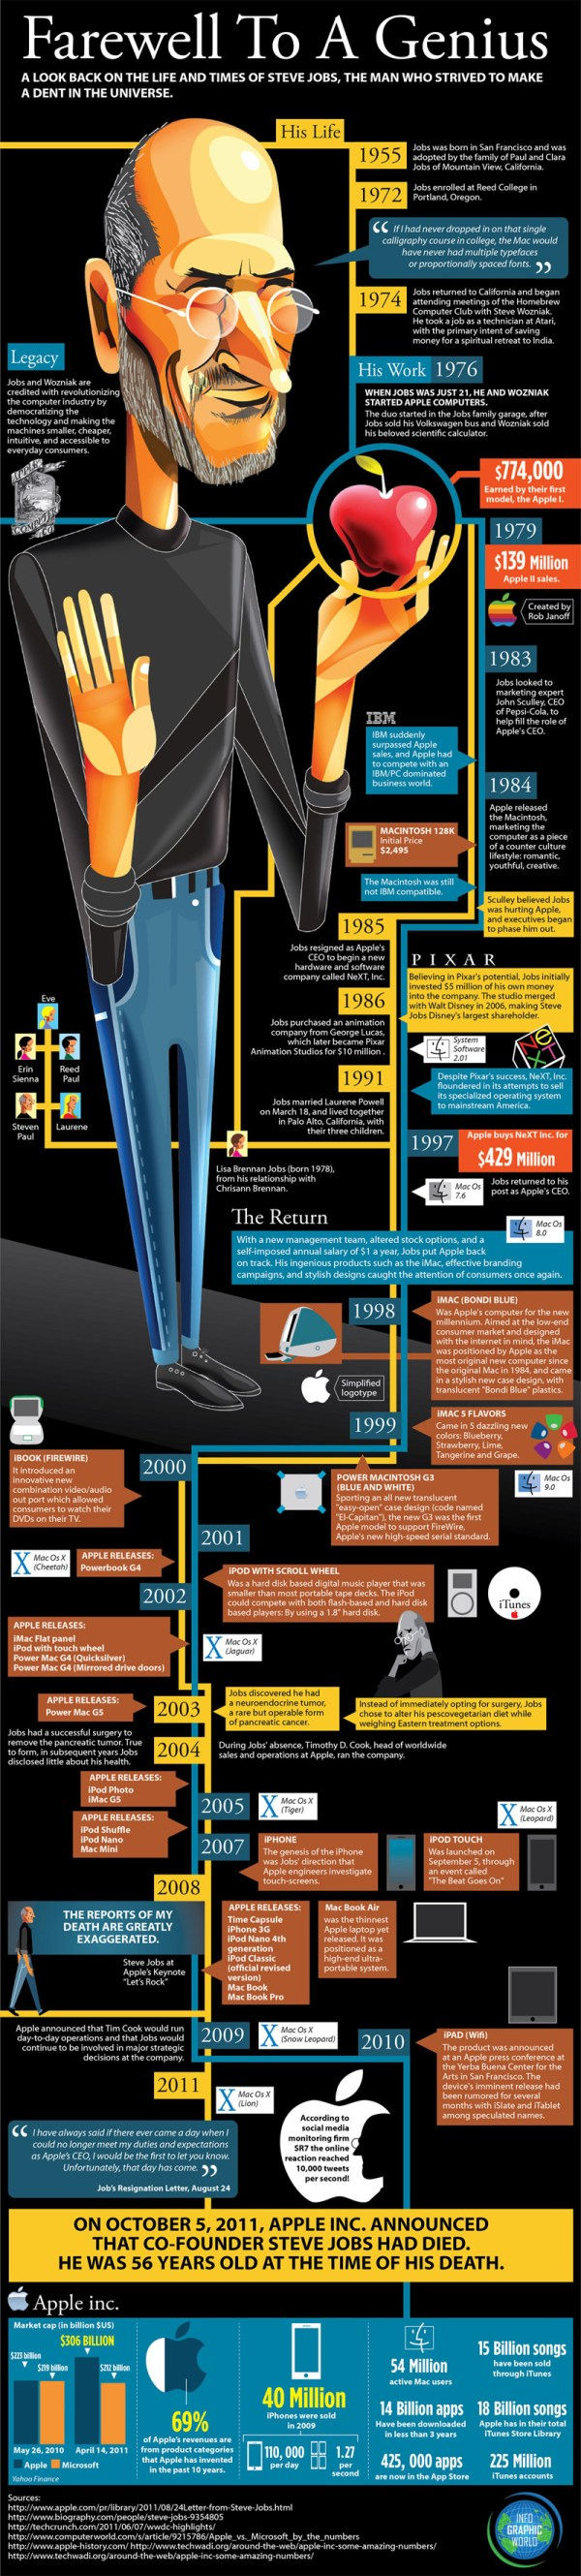 Steve Jobs Visual Biography And Quotes